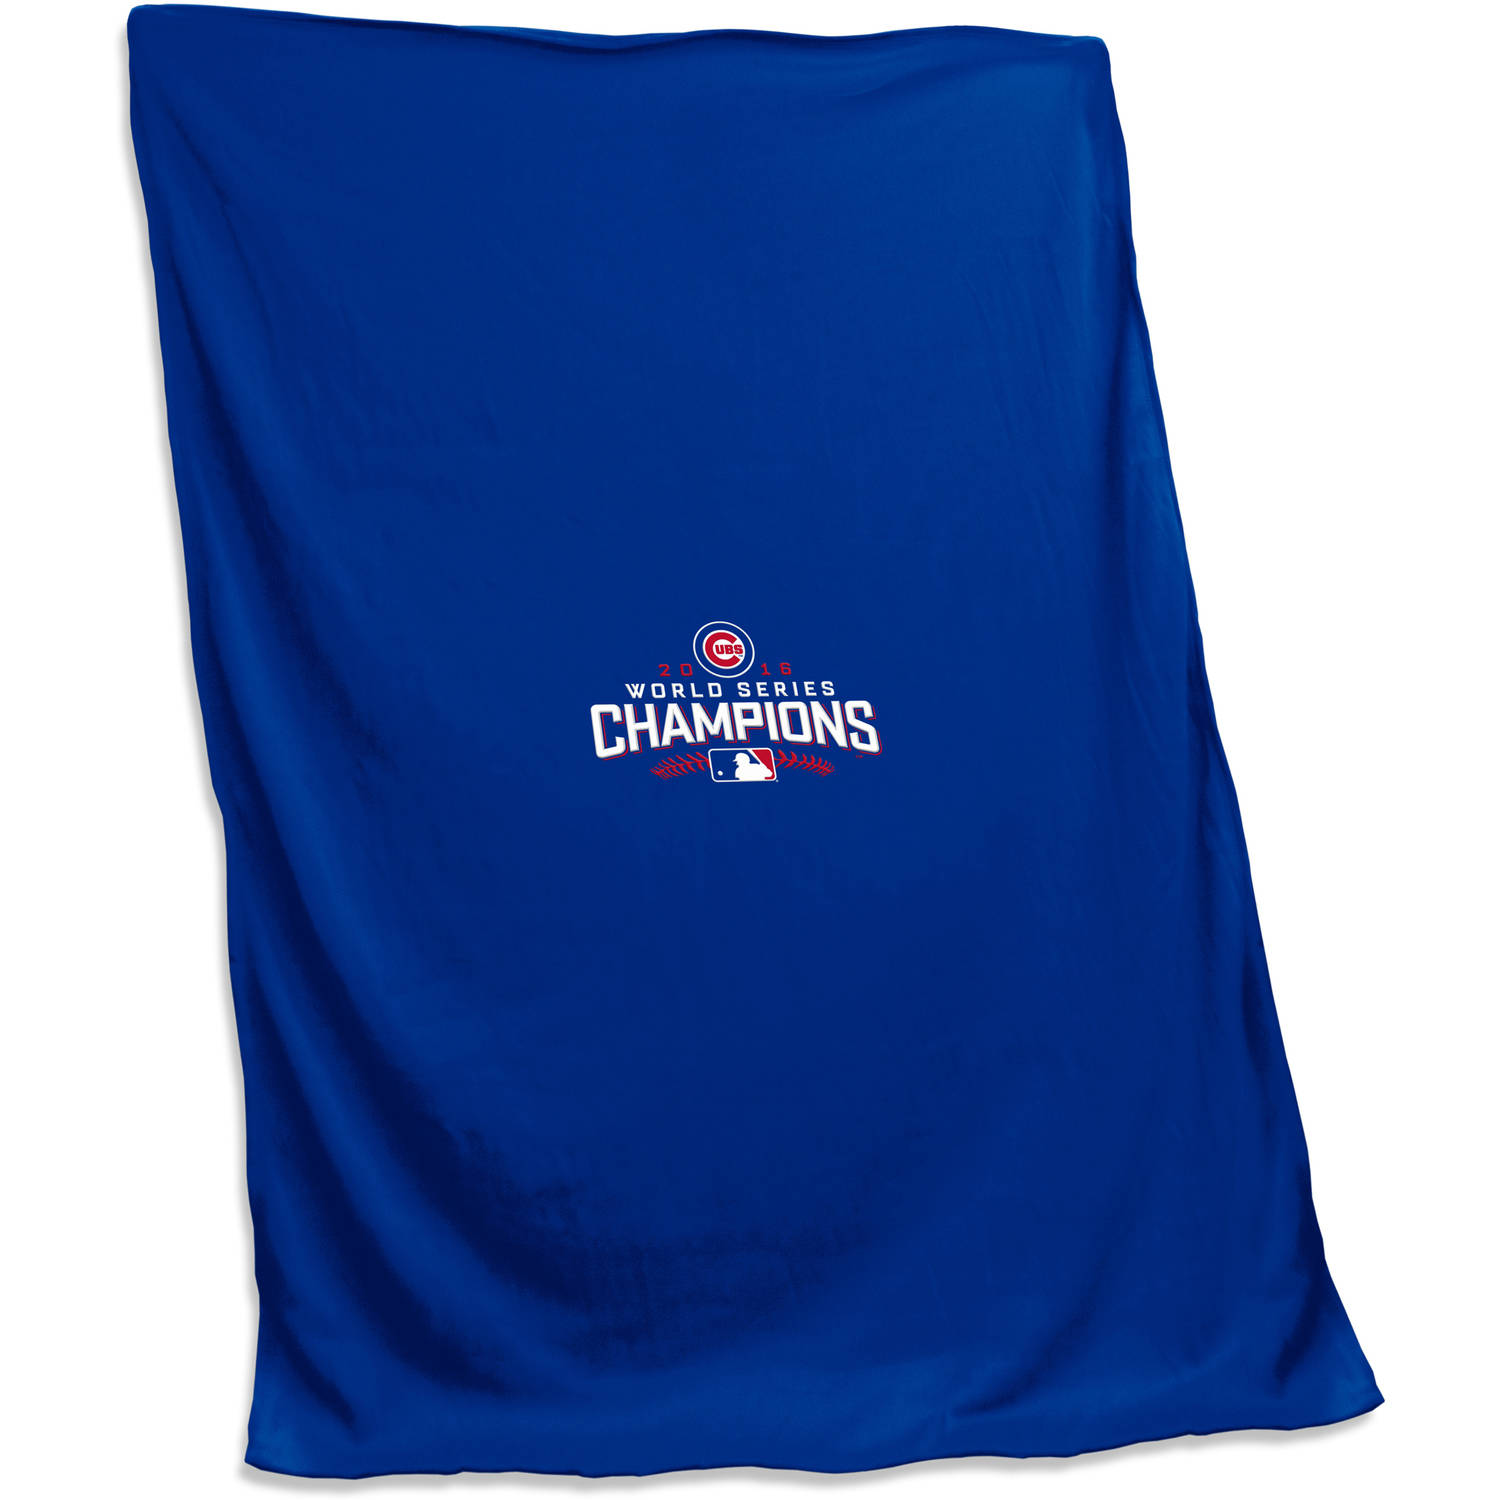 MLB Chicago Cubs 2016 World Series Champion Sweatshirt Blanket